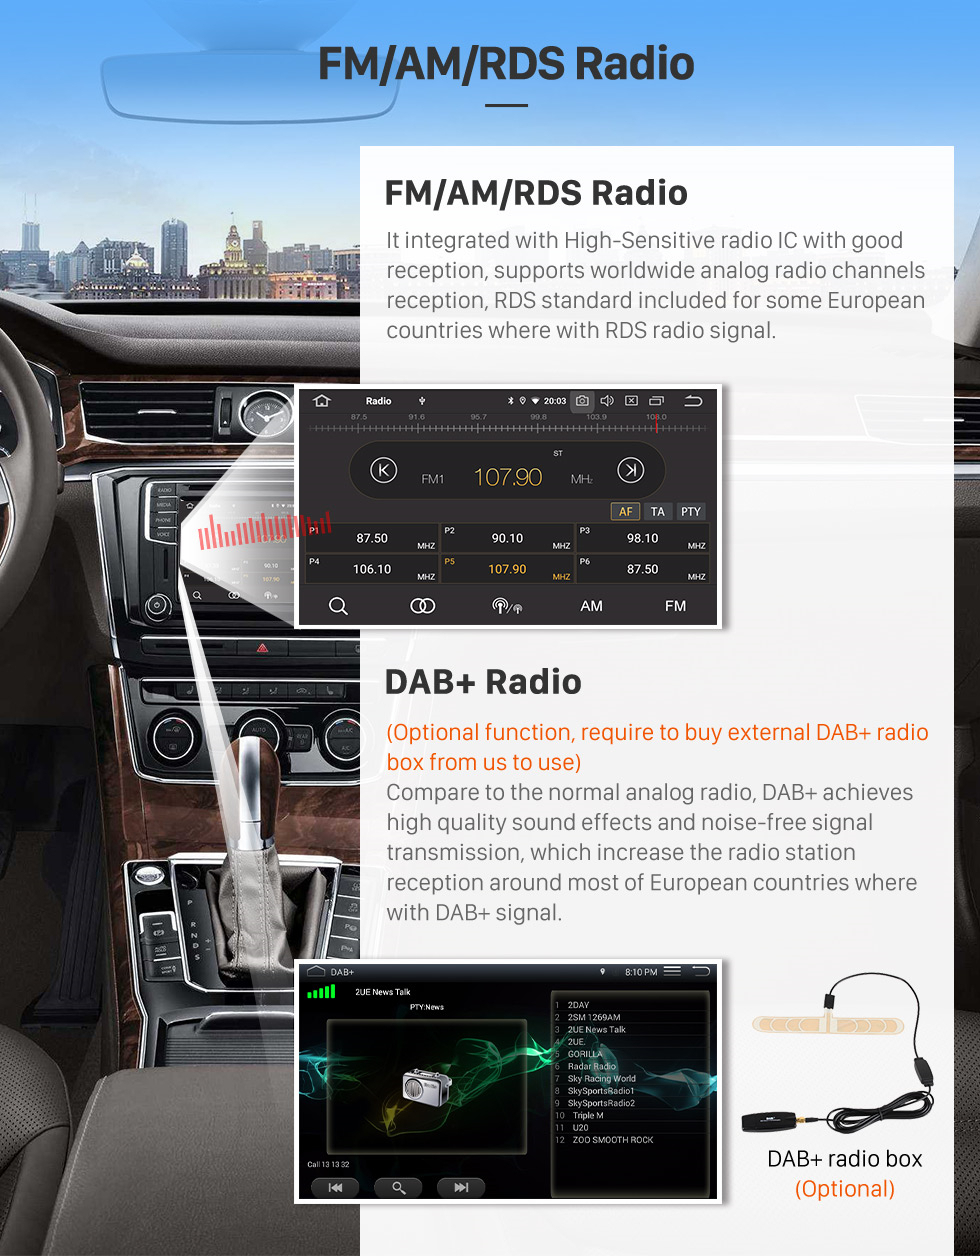 Seicane 9 inch aftermarket Android 9.0 HD Touchscreen GPS Navigation System Radio For 2008-2016 Kia Borrego with USB SupportDVR OBD II 3G/4G WIFI Steering Wheel Control